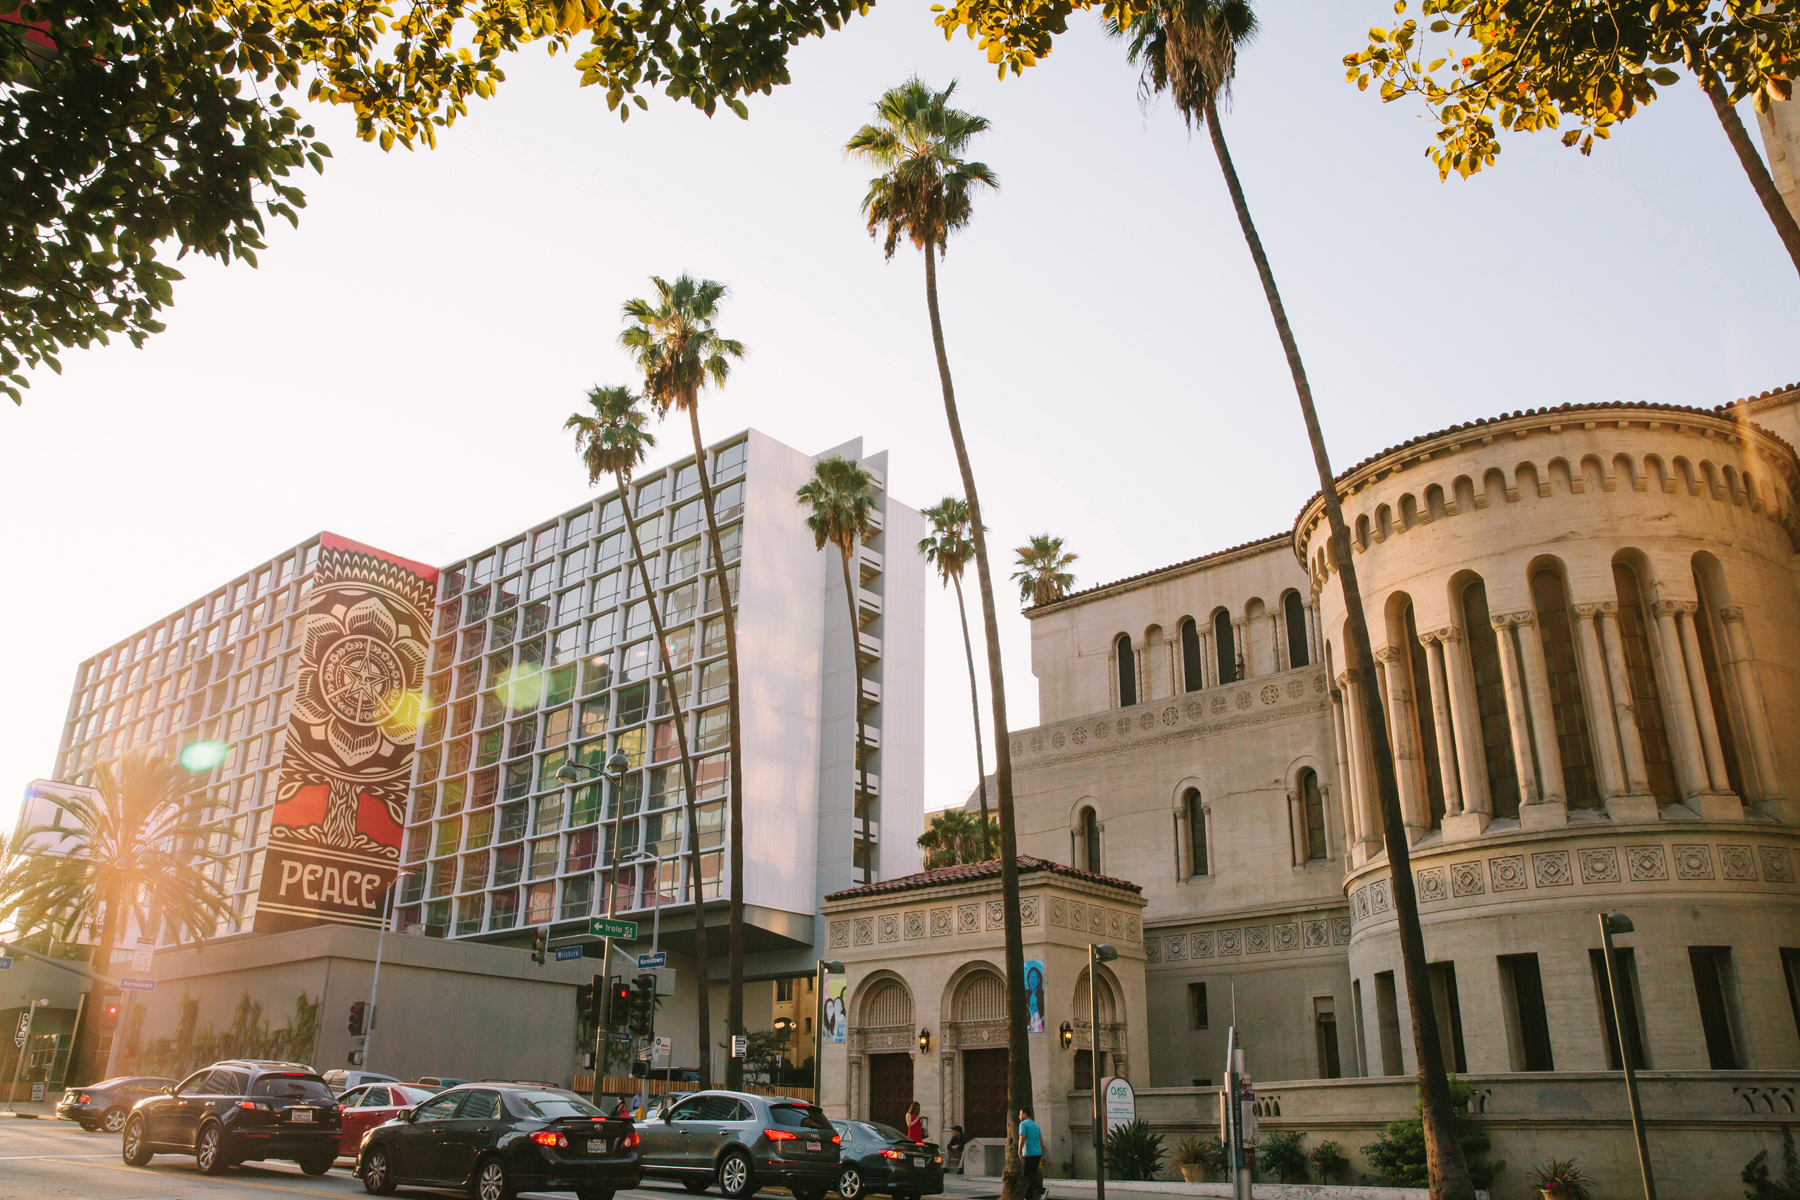 Los angeles life at the line hotel downtown la for Line hotel los angeles